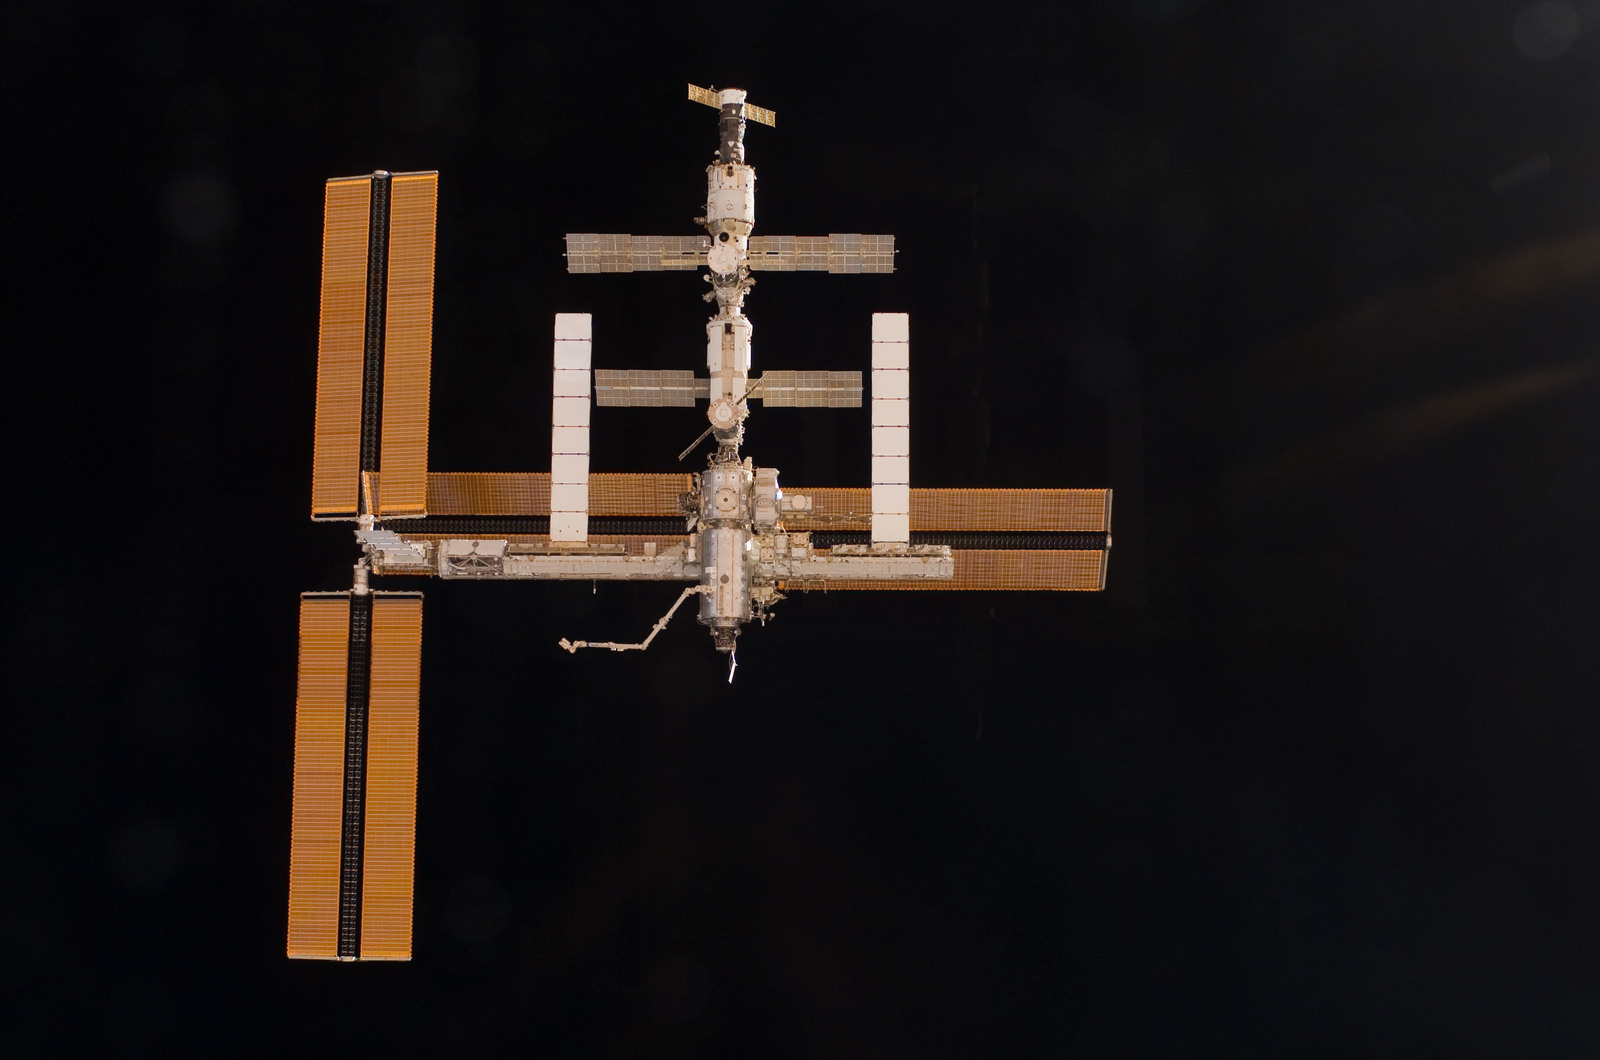 S115E06729 - STS-115 - Overall exterior view of the ISS during undocking and Flyaround Operations for STS-115 Space Shuttle Atlantis